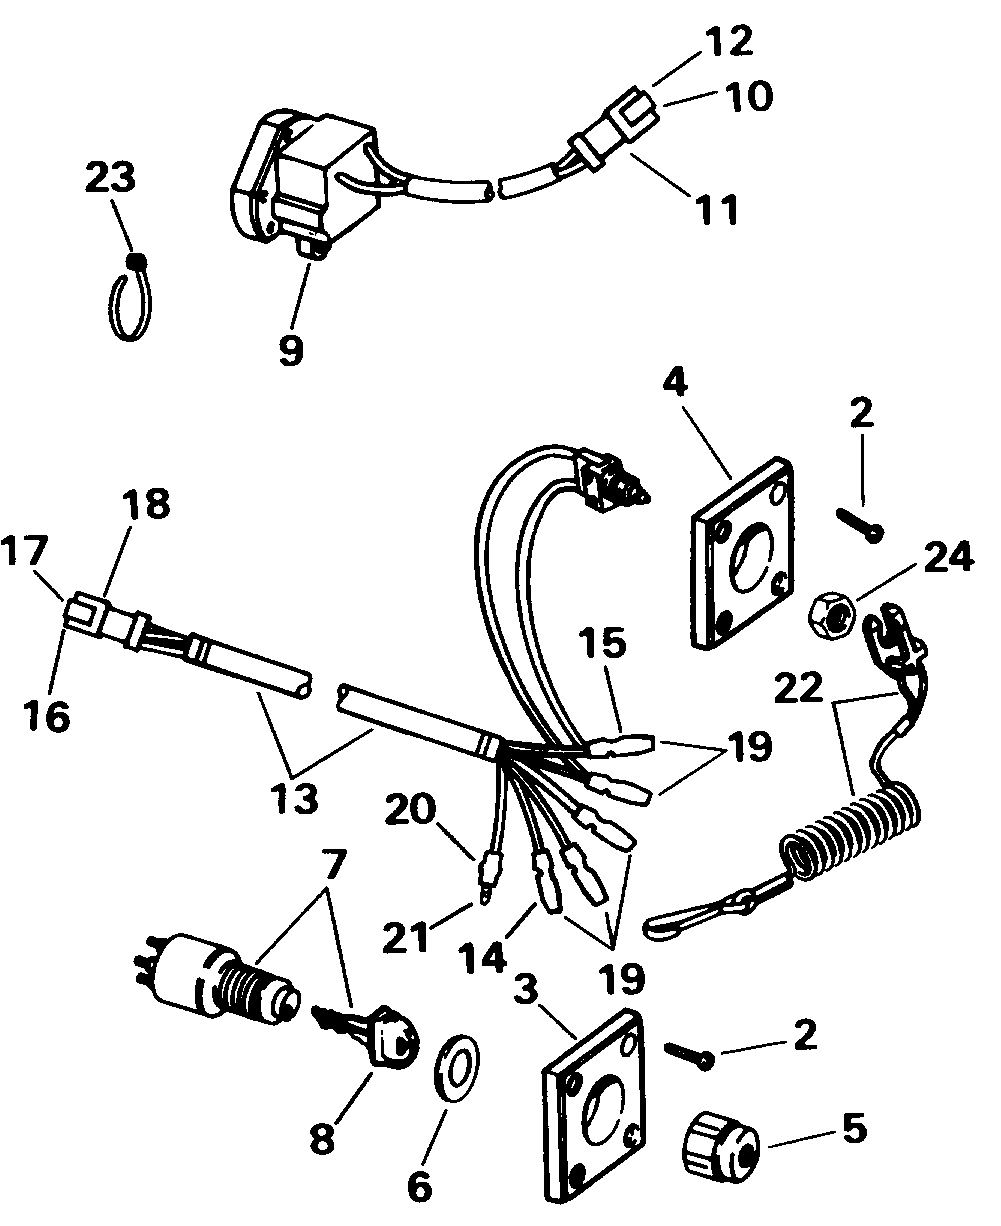 massey ferguson 35 wiring diagram led light bar with switch omc wire auto electrical johnson outboard ignition 47